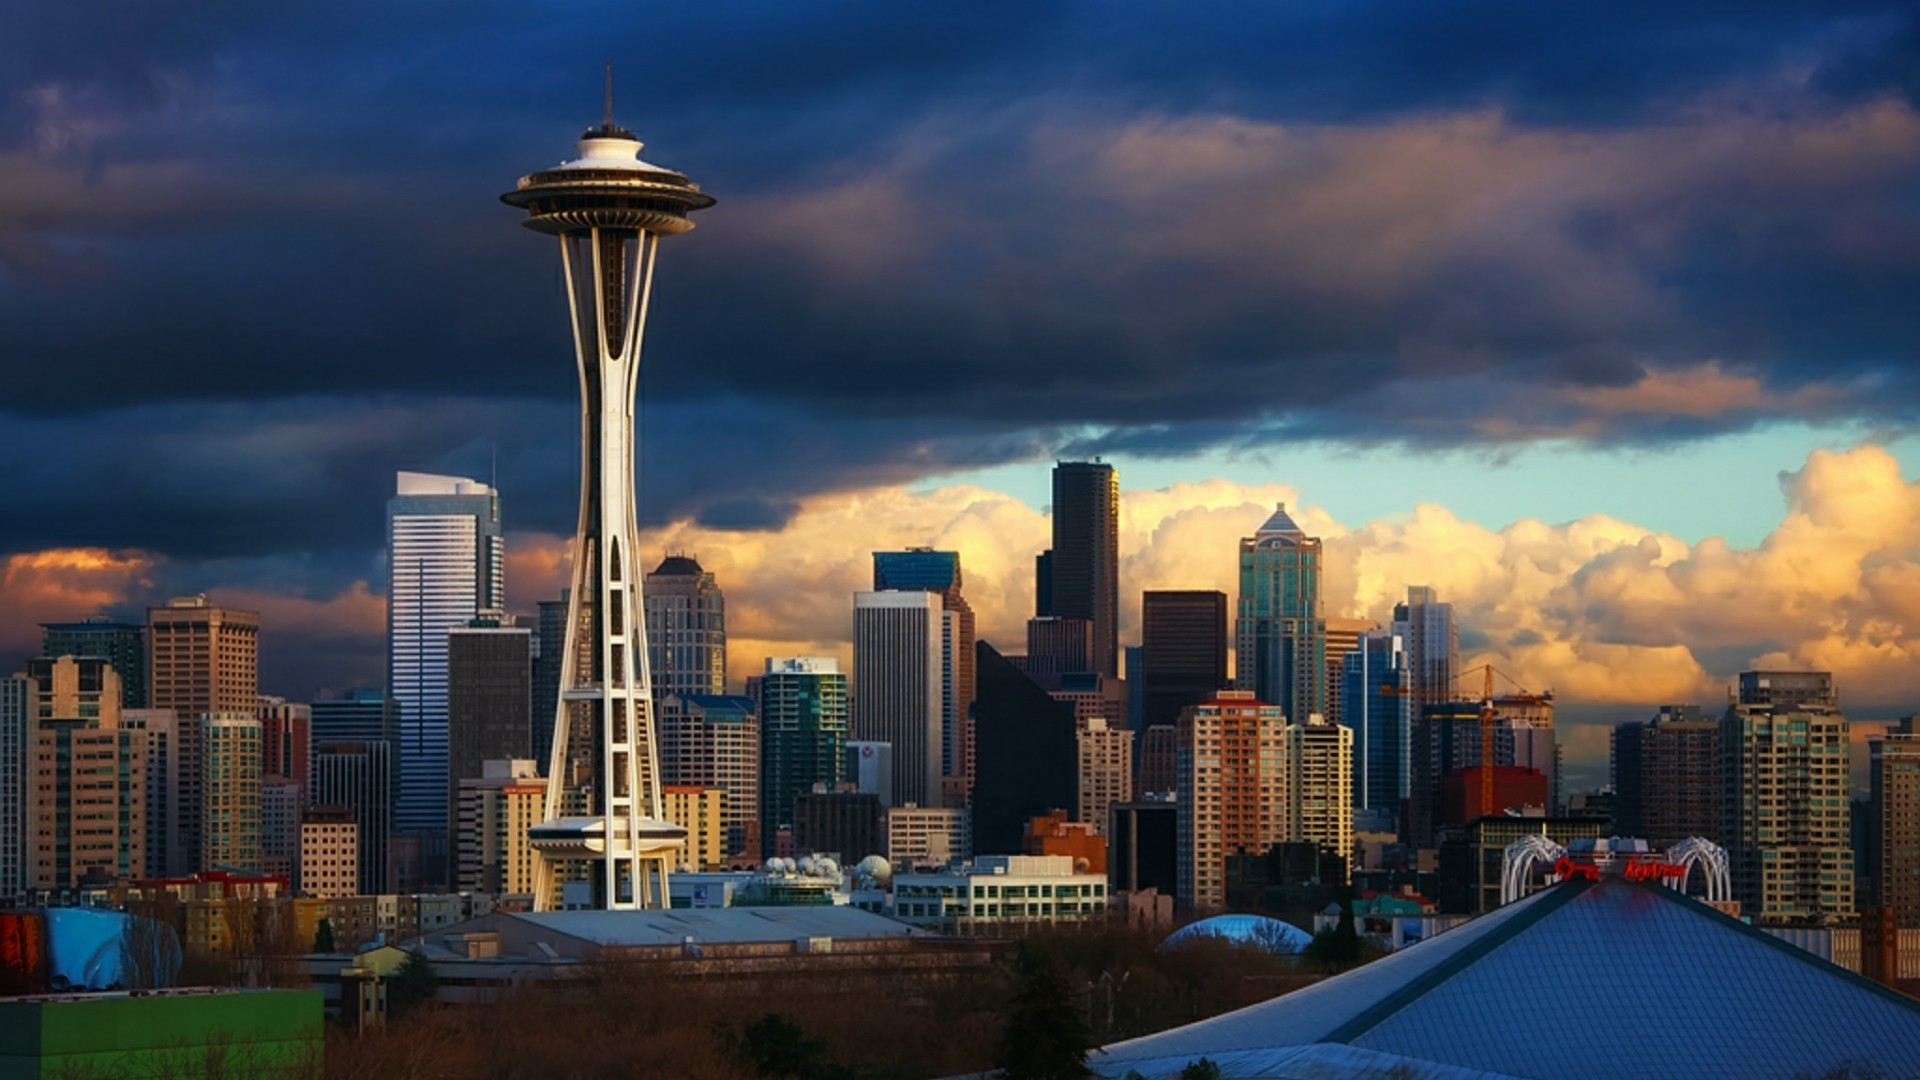 1920x1080 Seattle Center Washington United States Android Seattle Backgrounds 1920x1080 Wallpaper Teahub Io